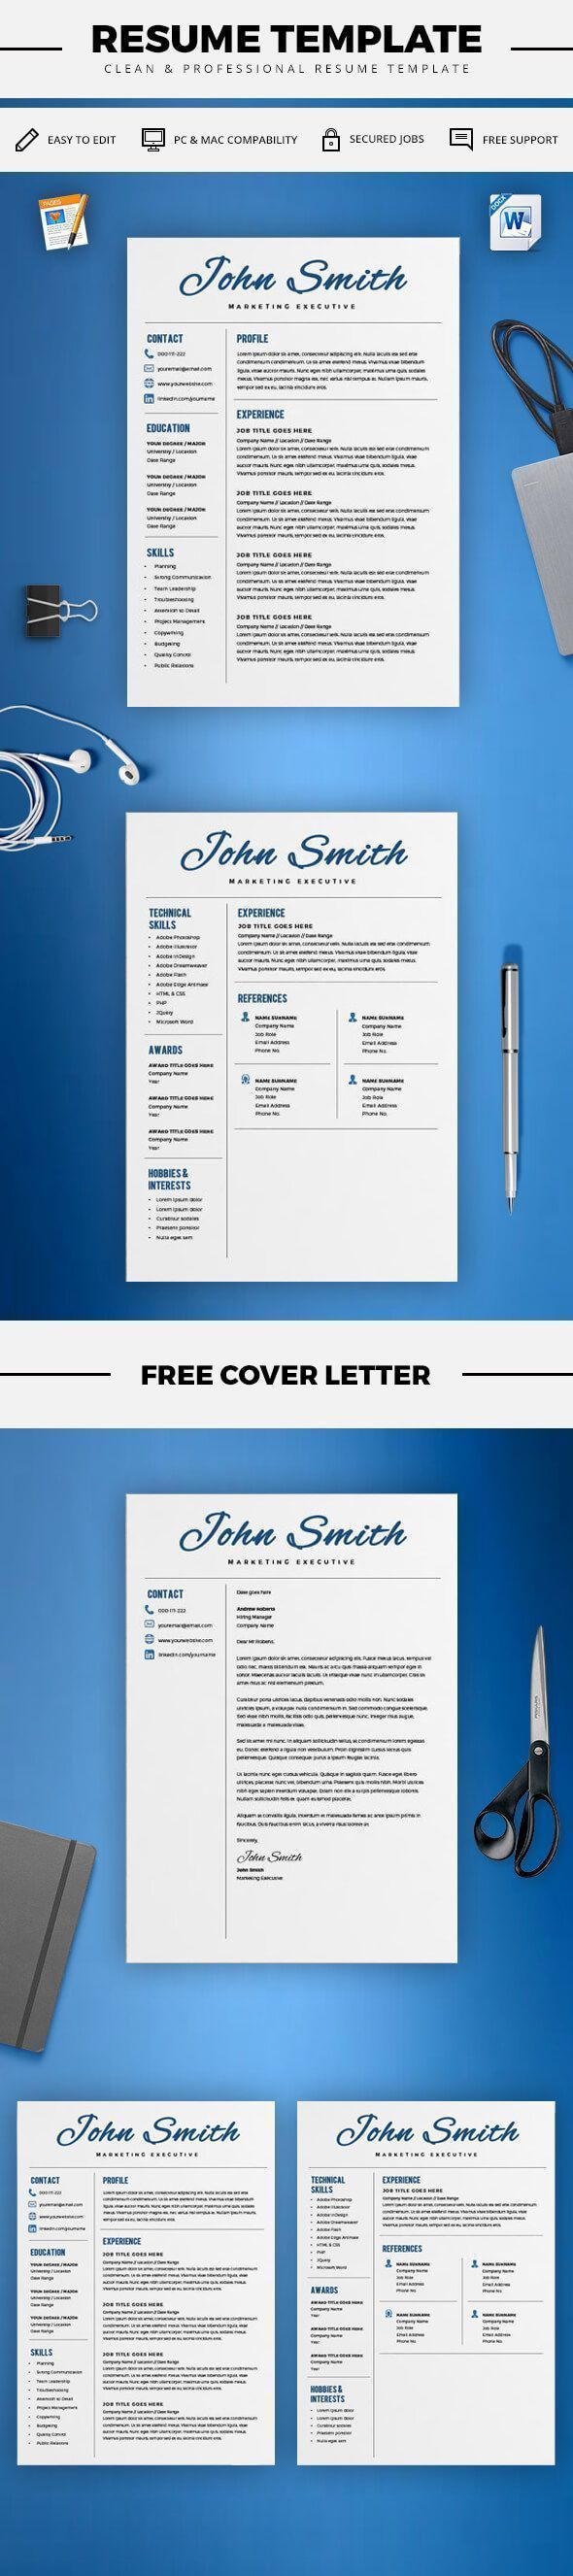 Creative Resume Template - CV Template + Cover Letter - Word and Pages - 2 Page Resume - Best Resume Templates - Instant Download